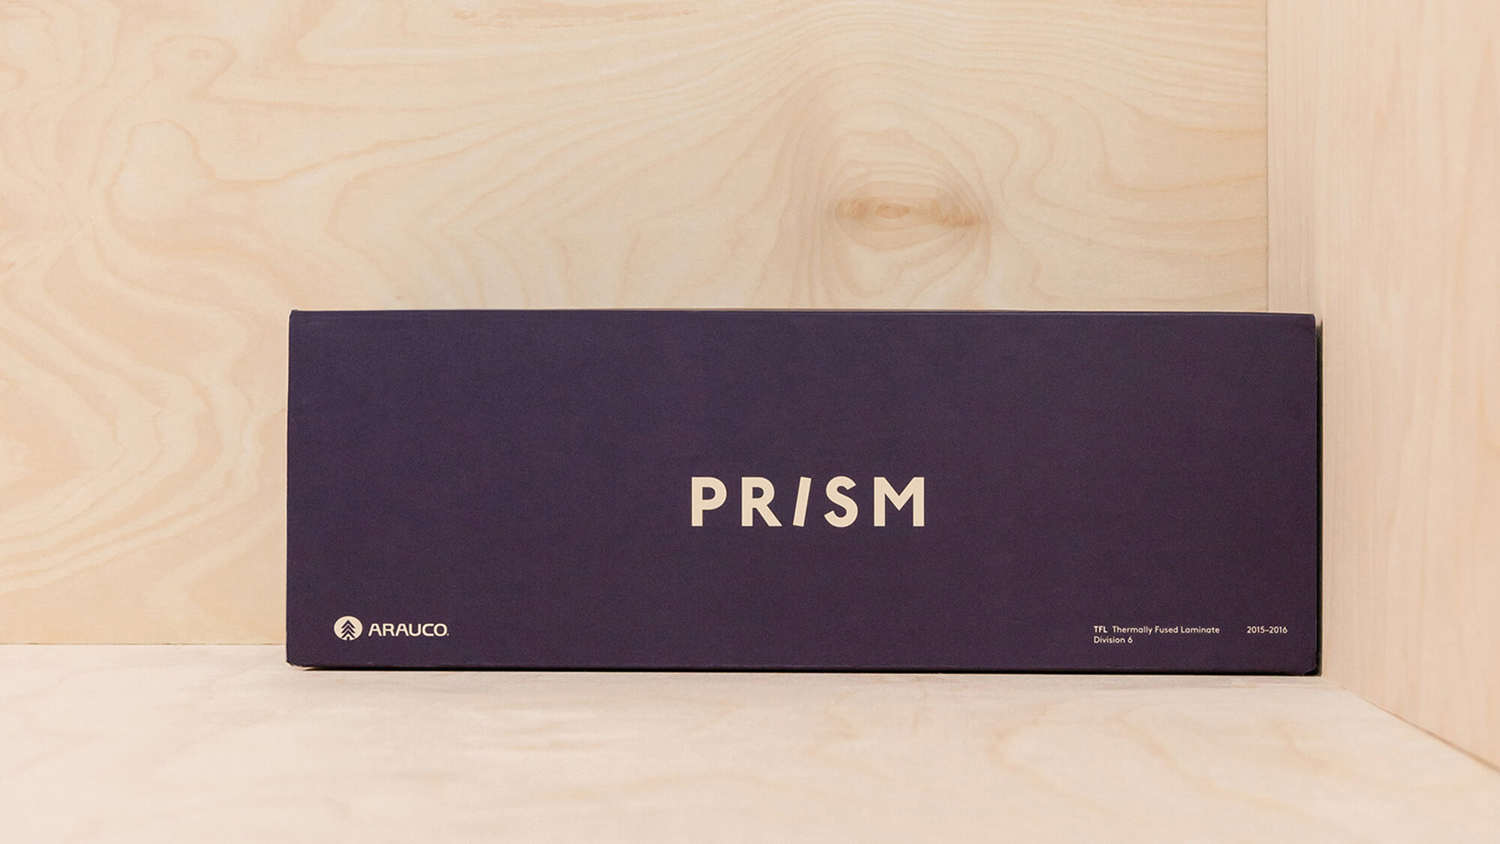 Brand identity and packaging for American laminate brand Prism by Atlanta based graphic design studio Matchstic